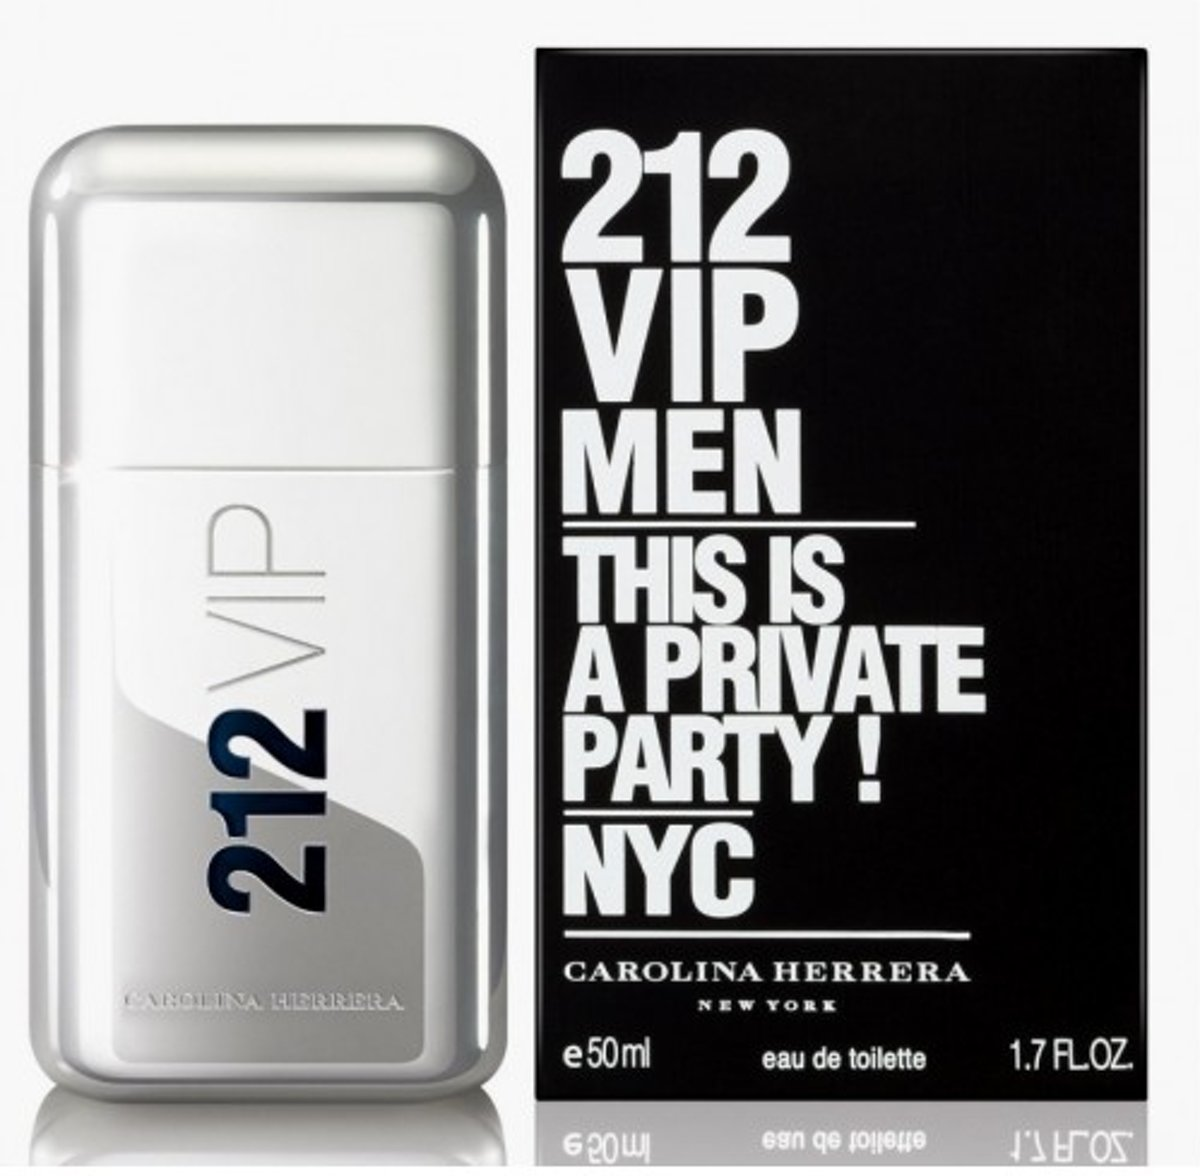 MULTI BUNDEL 2 stuks Carolina Herrera 212 Vip Men Eau De Toilette Spray 50ml